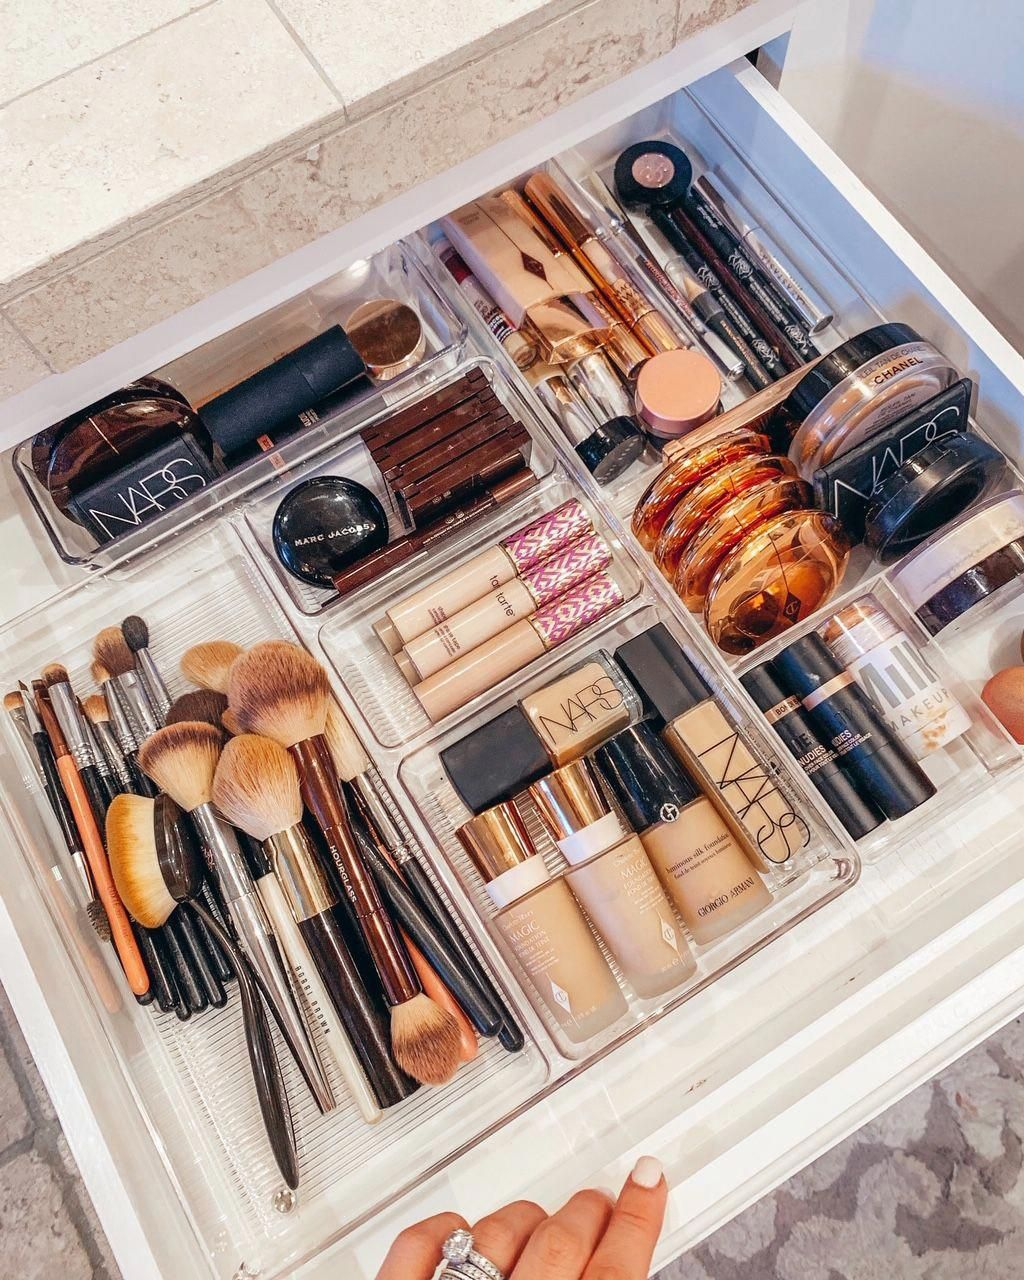 Search This Necessary Graphics And Also Look Into The Shown Relevant Inf Small Bathroom Organization Bathroom Vanity Organization Bathroom Cabinet Organization